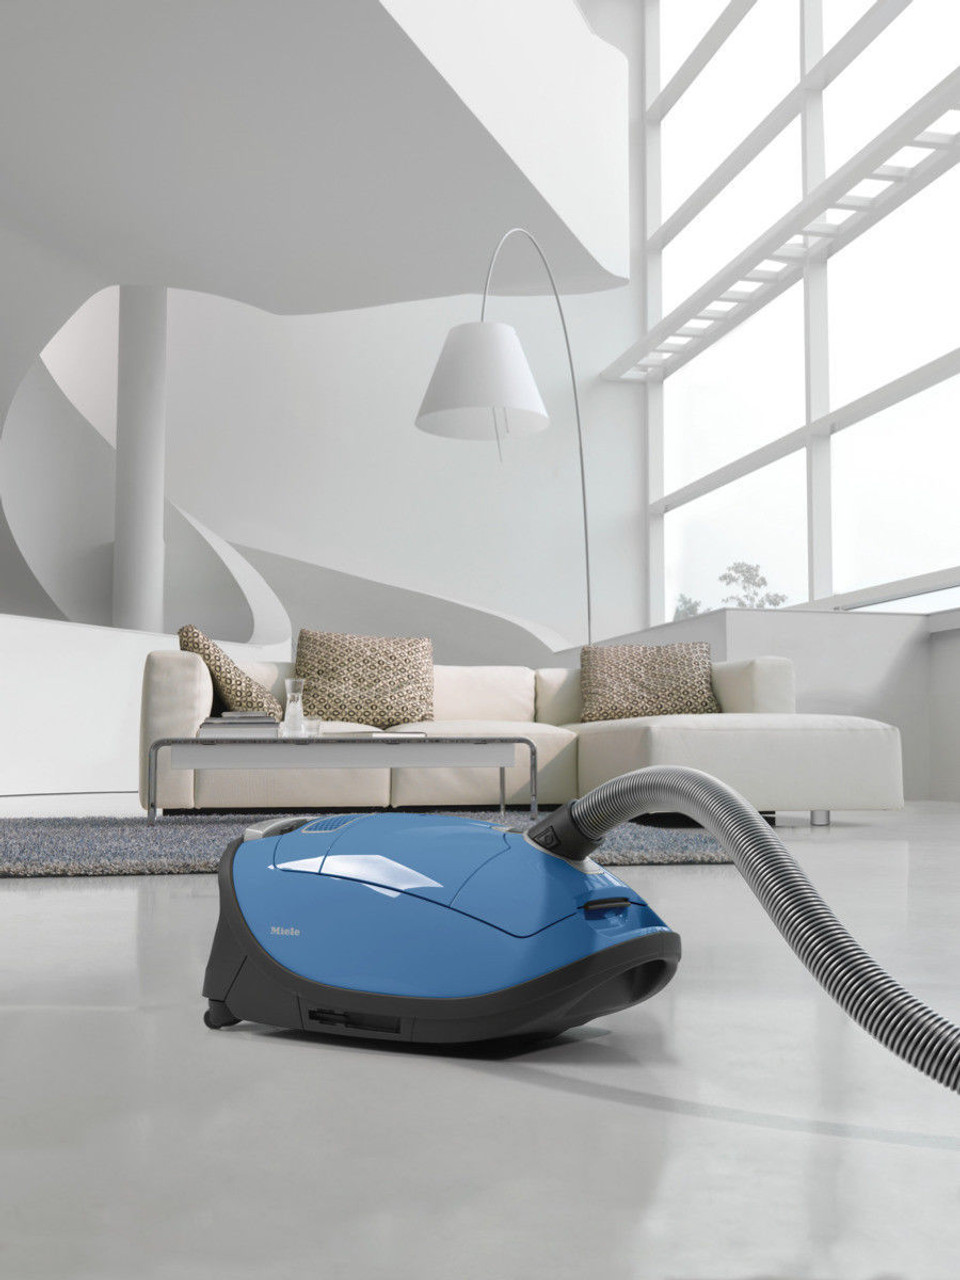 NEW 2018 Miele 10797840 Complete C3 Allergy PowerLine Vacuum Cleaner - Tech Blue